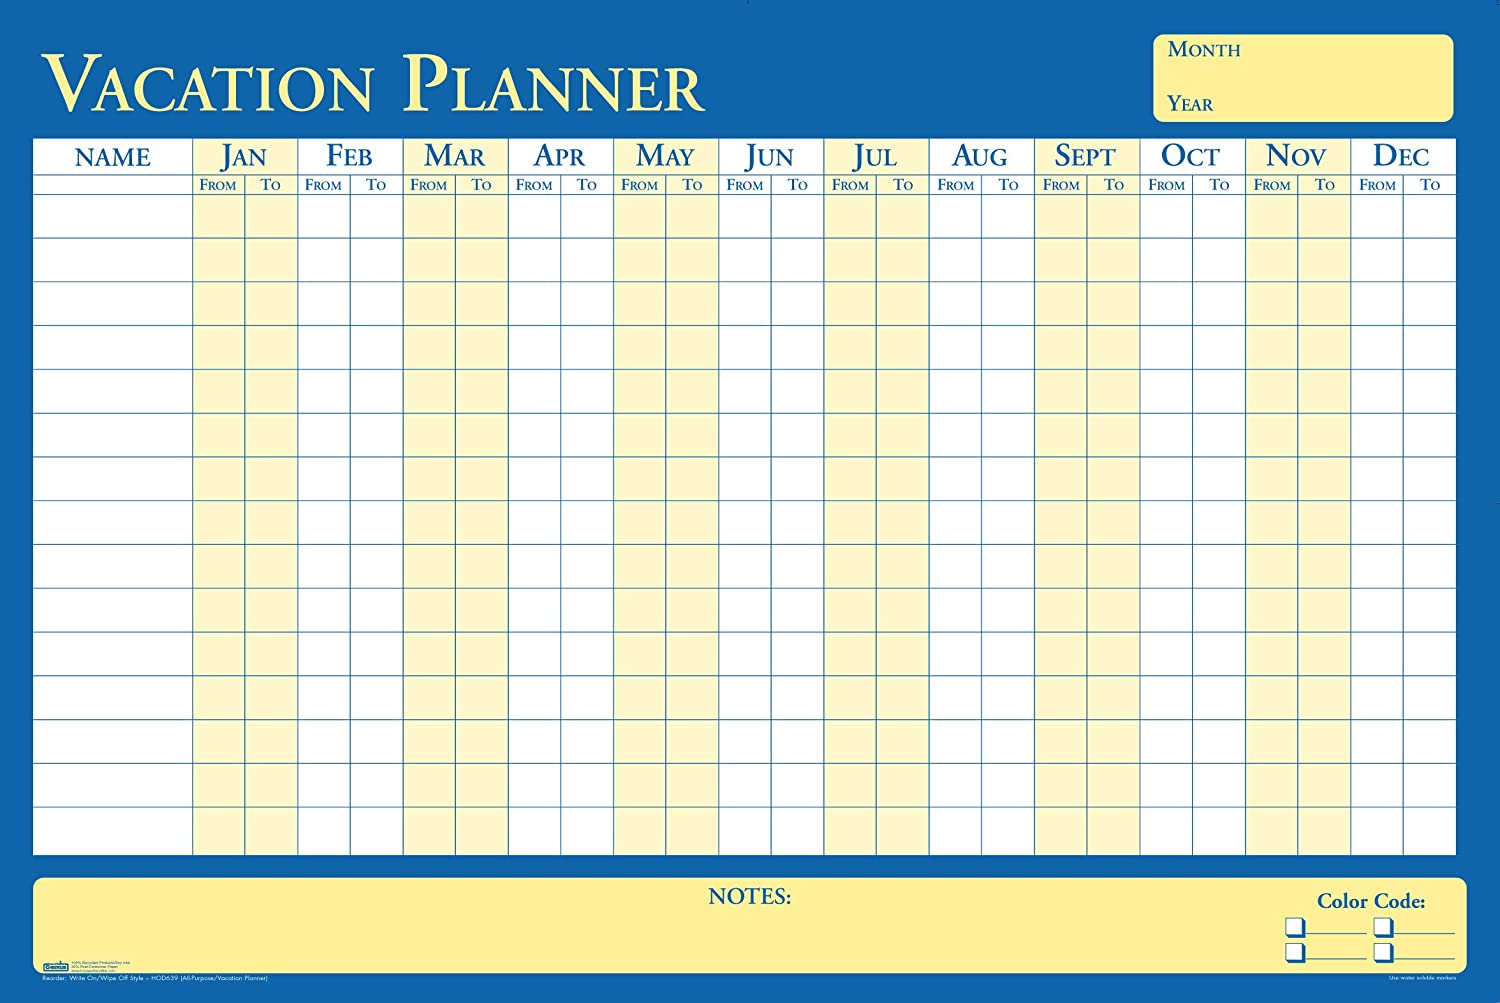 House of Doolittle Plan-A-Board Vacation/All-Purpose Laminated Planner Reversible 36 x 24 Inch (HOD639)